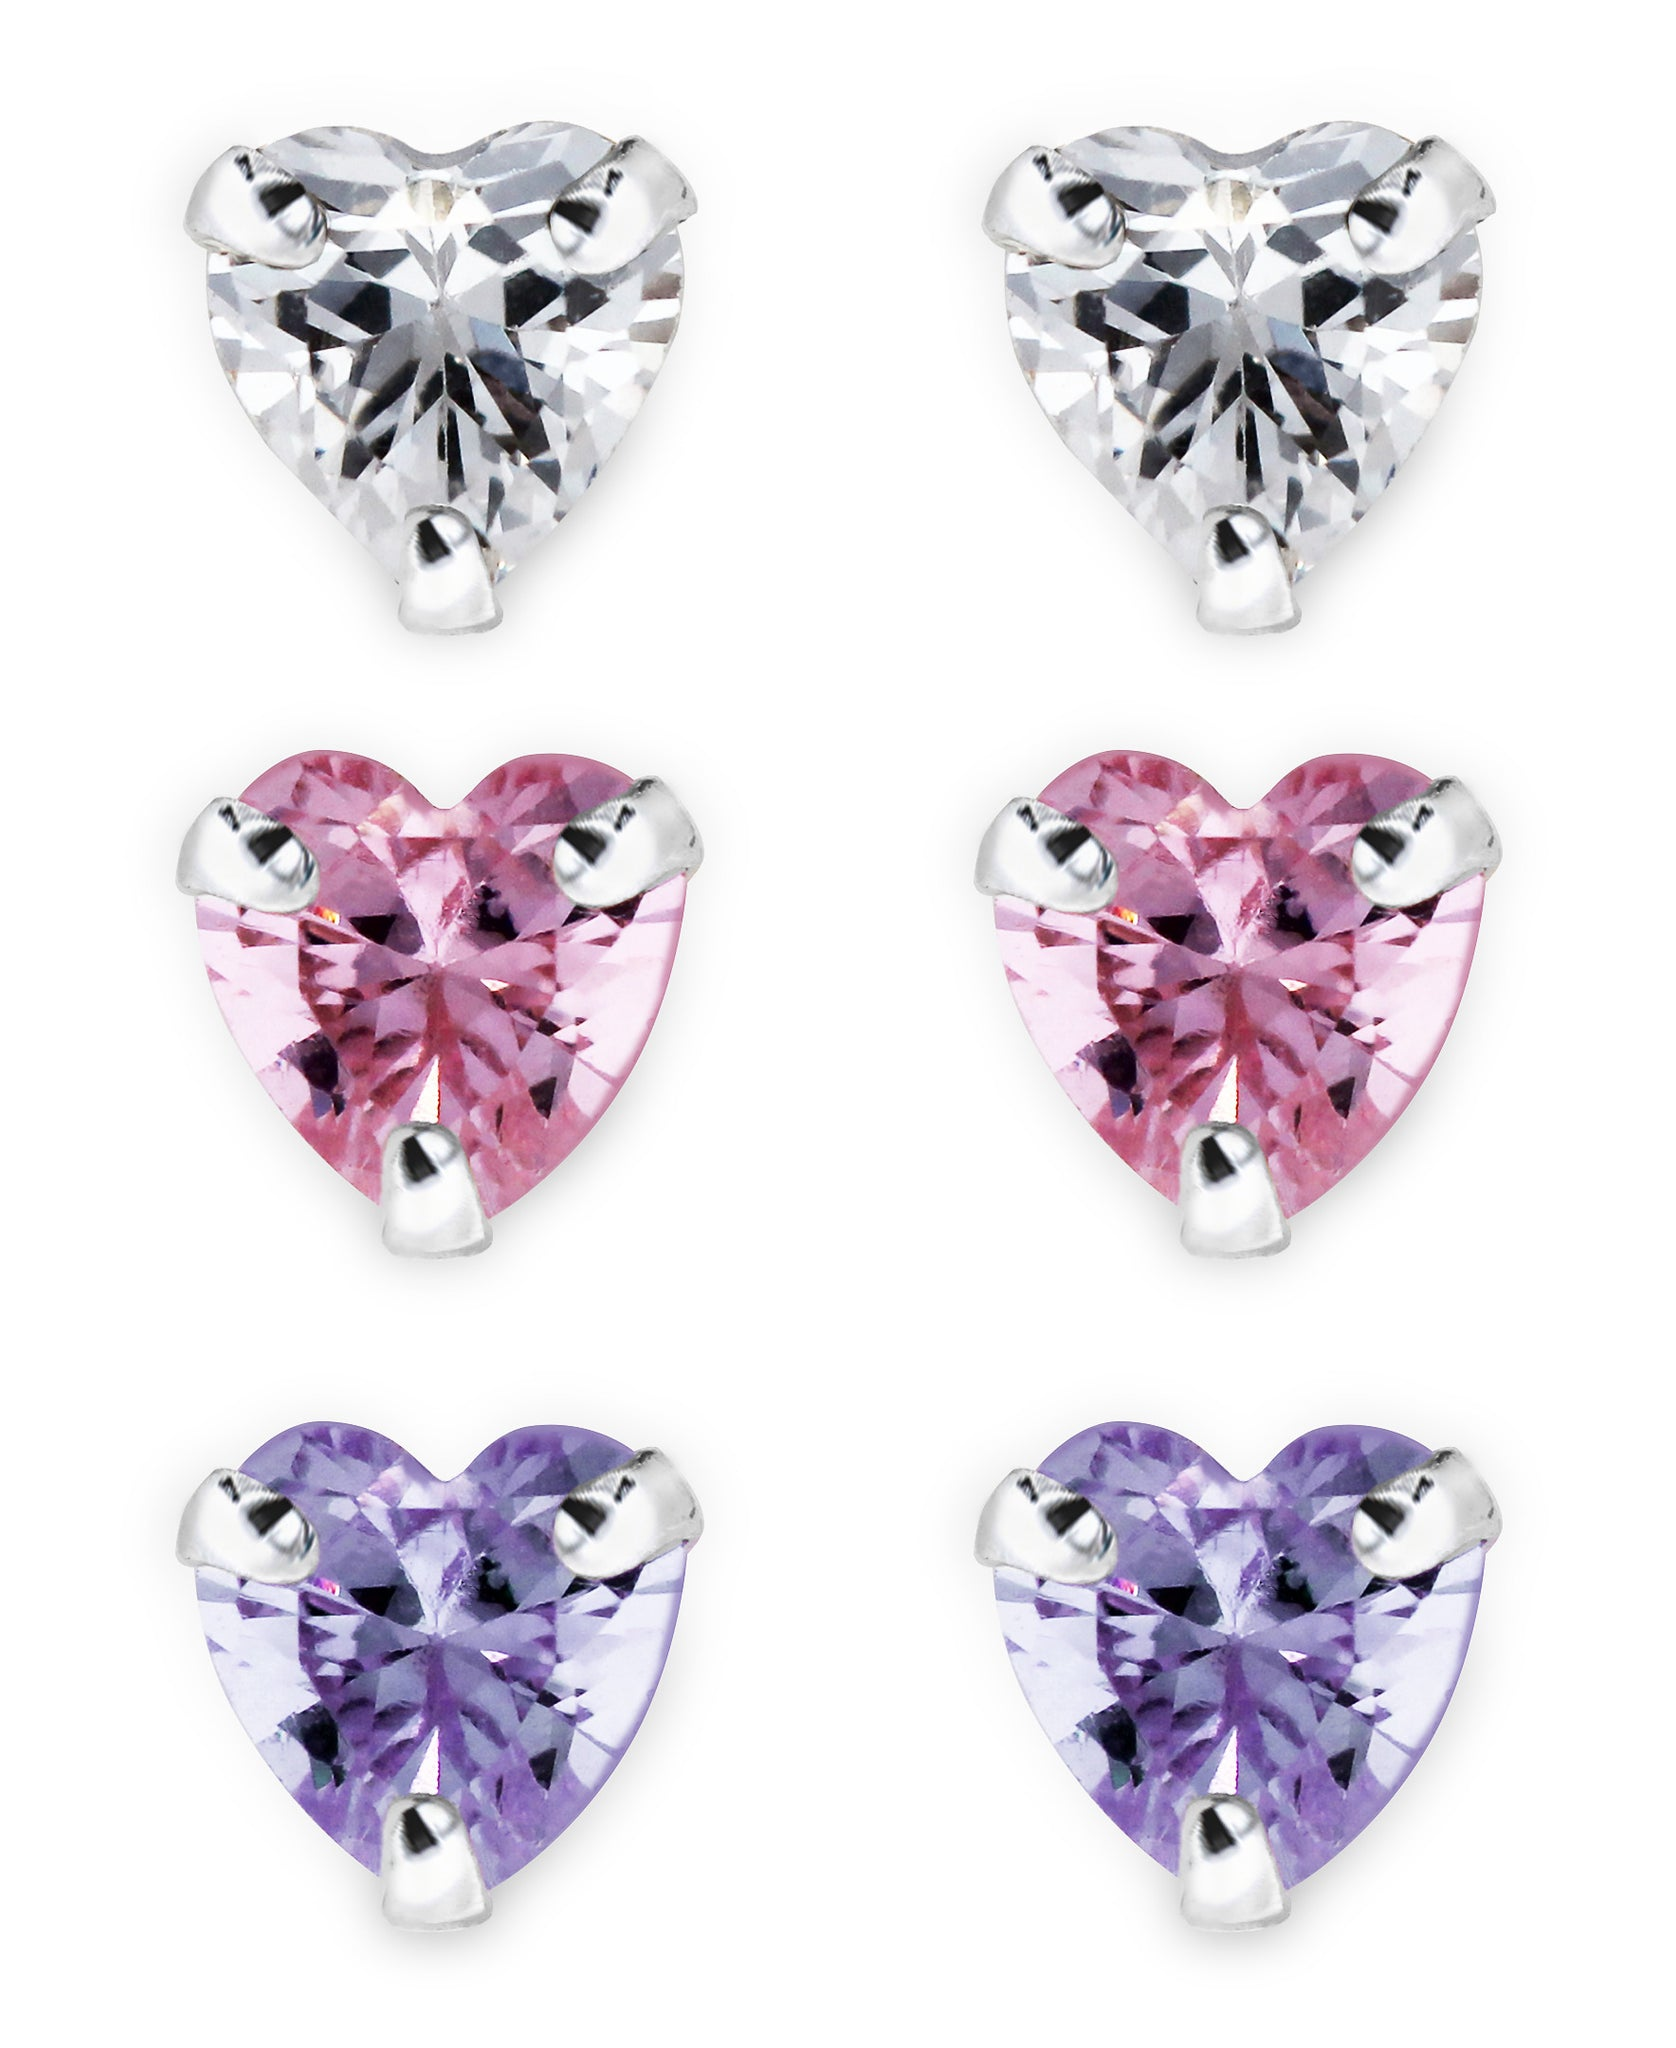 Children's Sterling Silver Colored Cubic Zirconia Heart Stud Earrings - Set of 3 - Rhona Sutton Jewellery